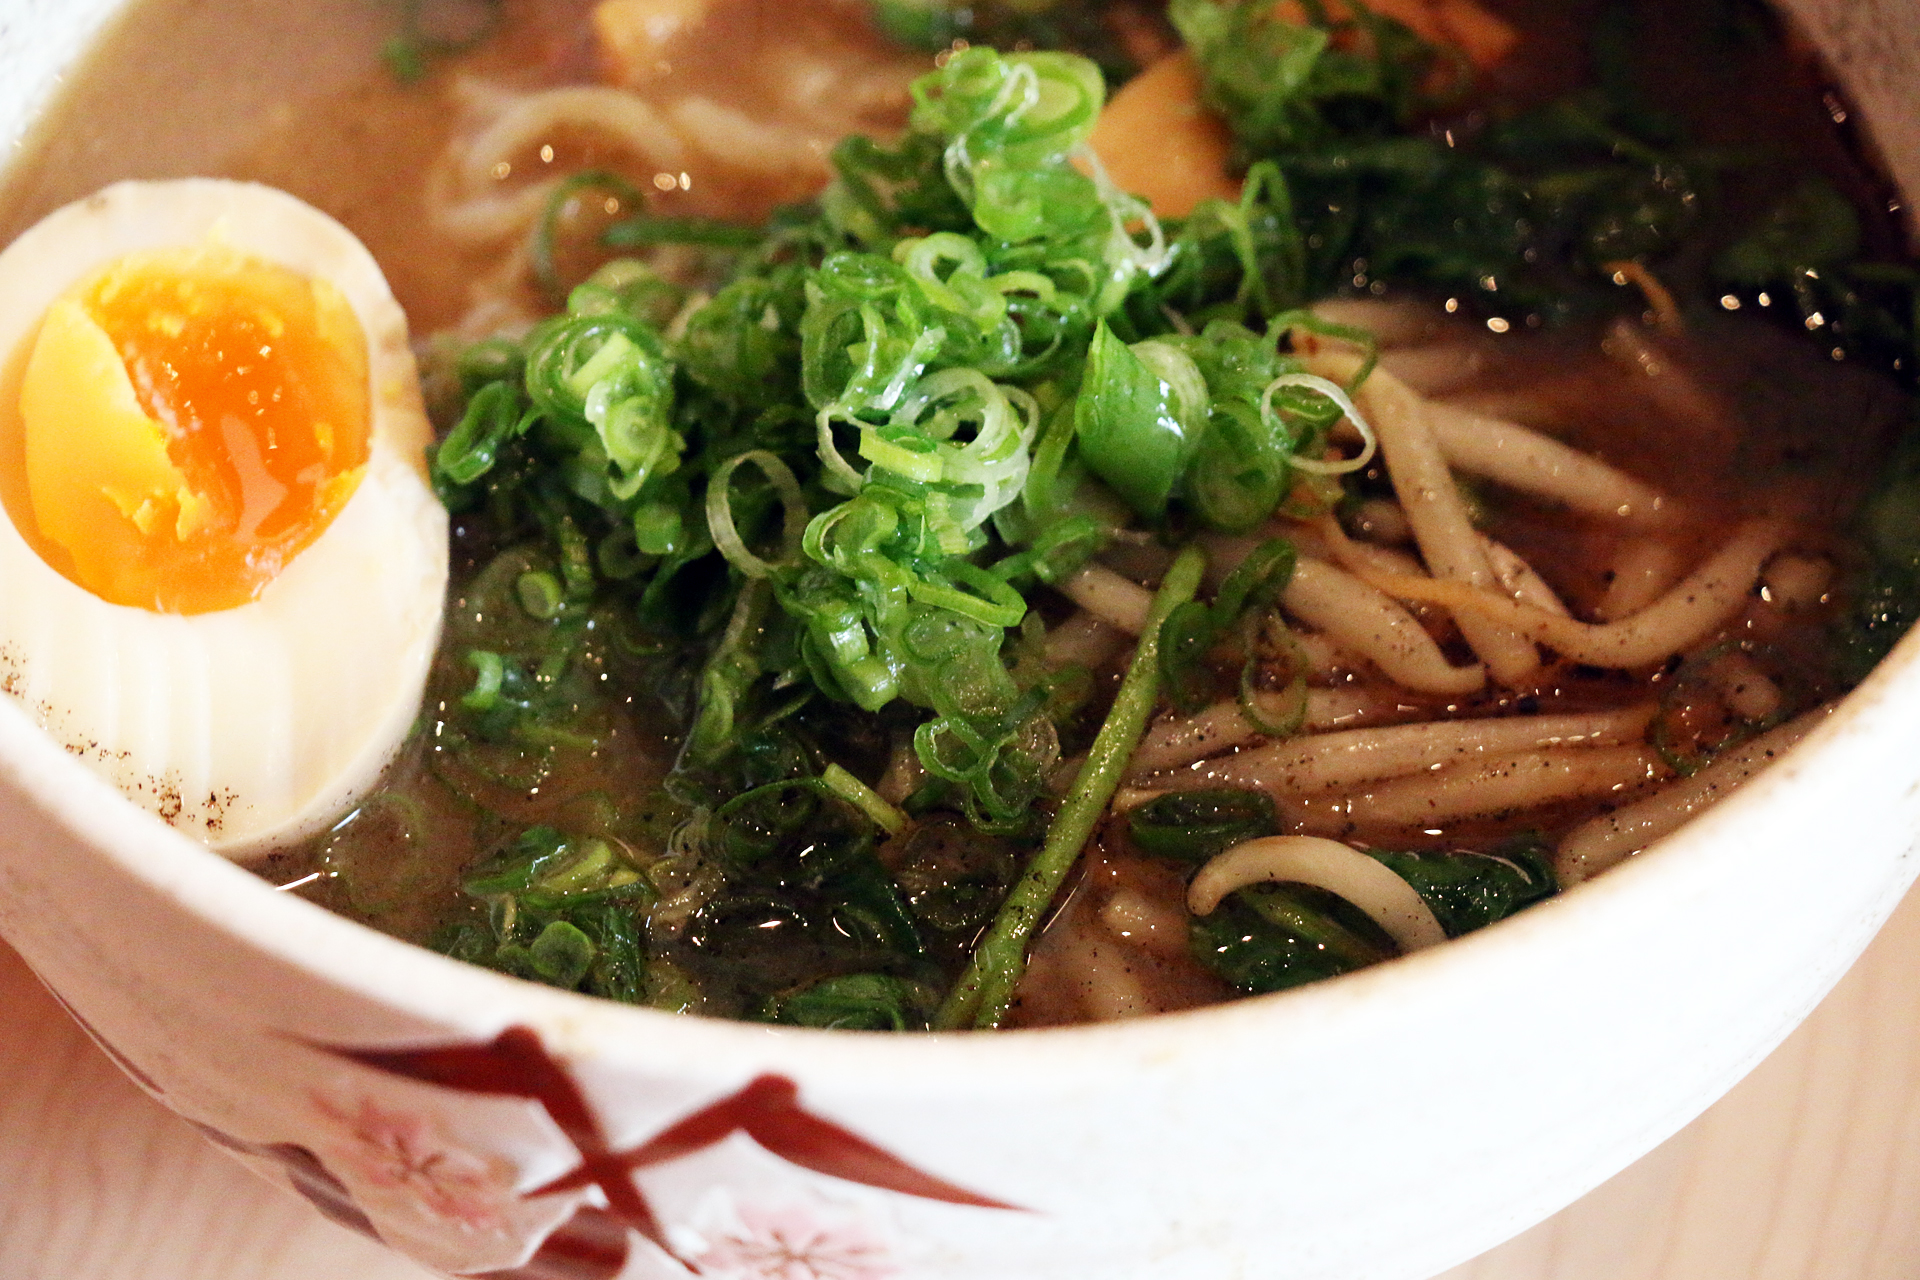 Miso ramen with watercress, bamboo shoots, bean sprouts and black garlic oil.